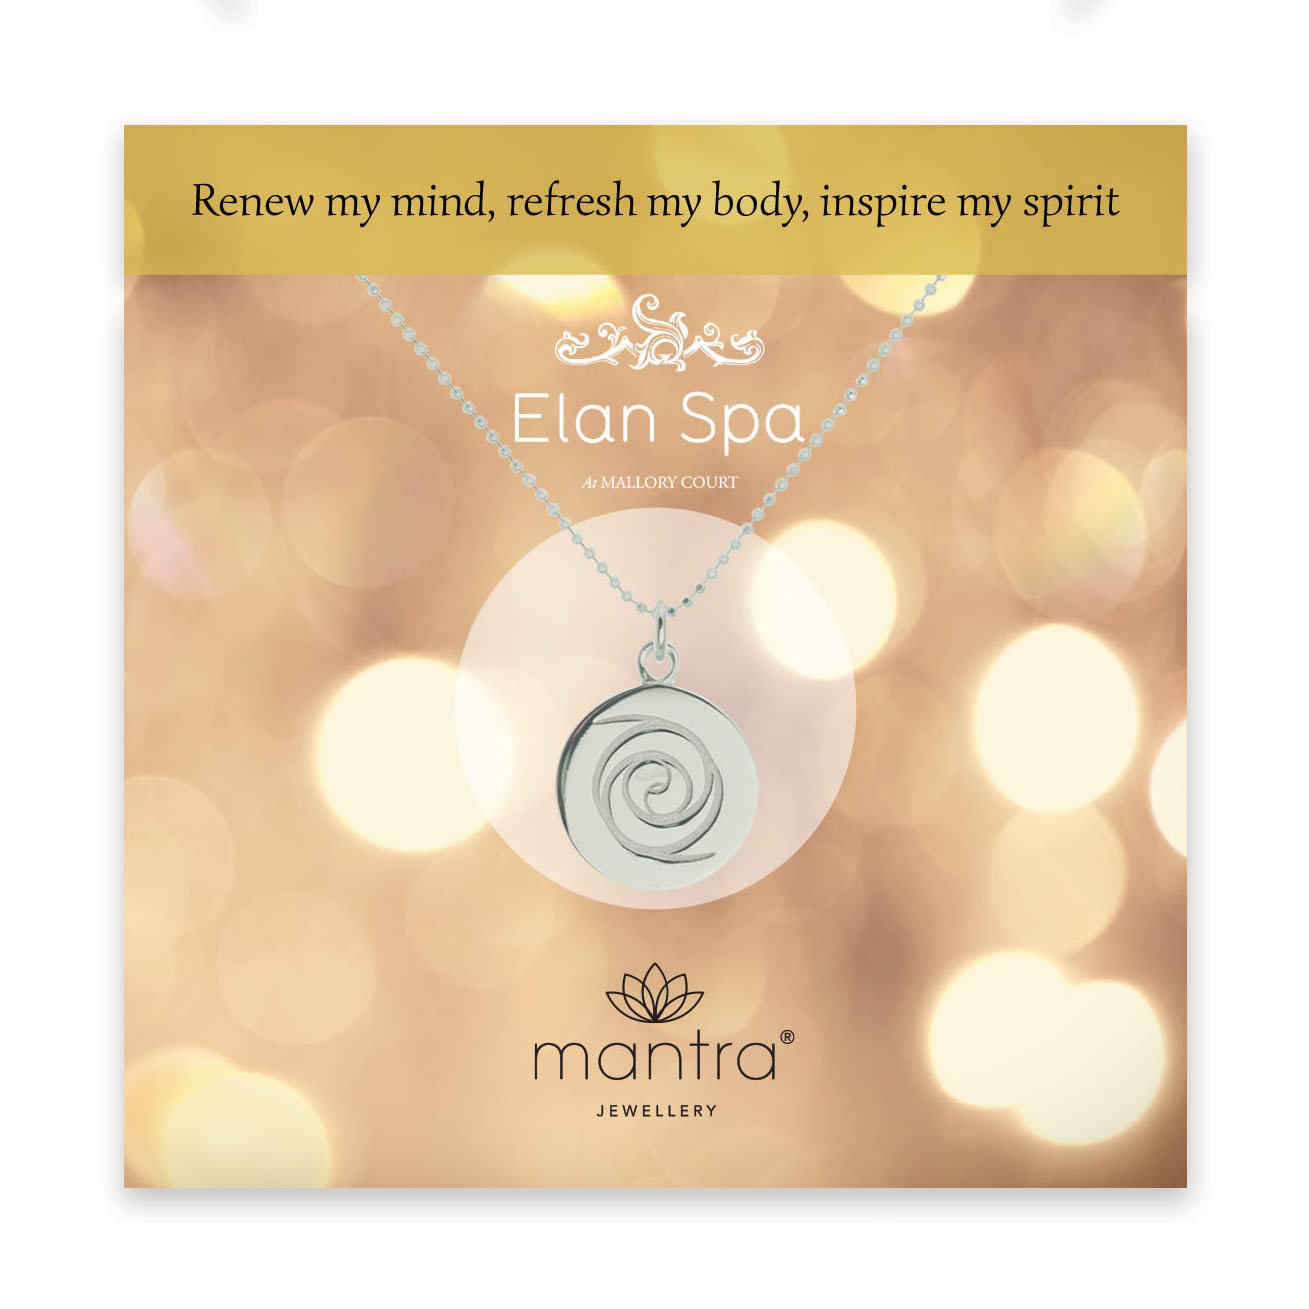 Mantra Collaboration with Elan Spa